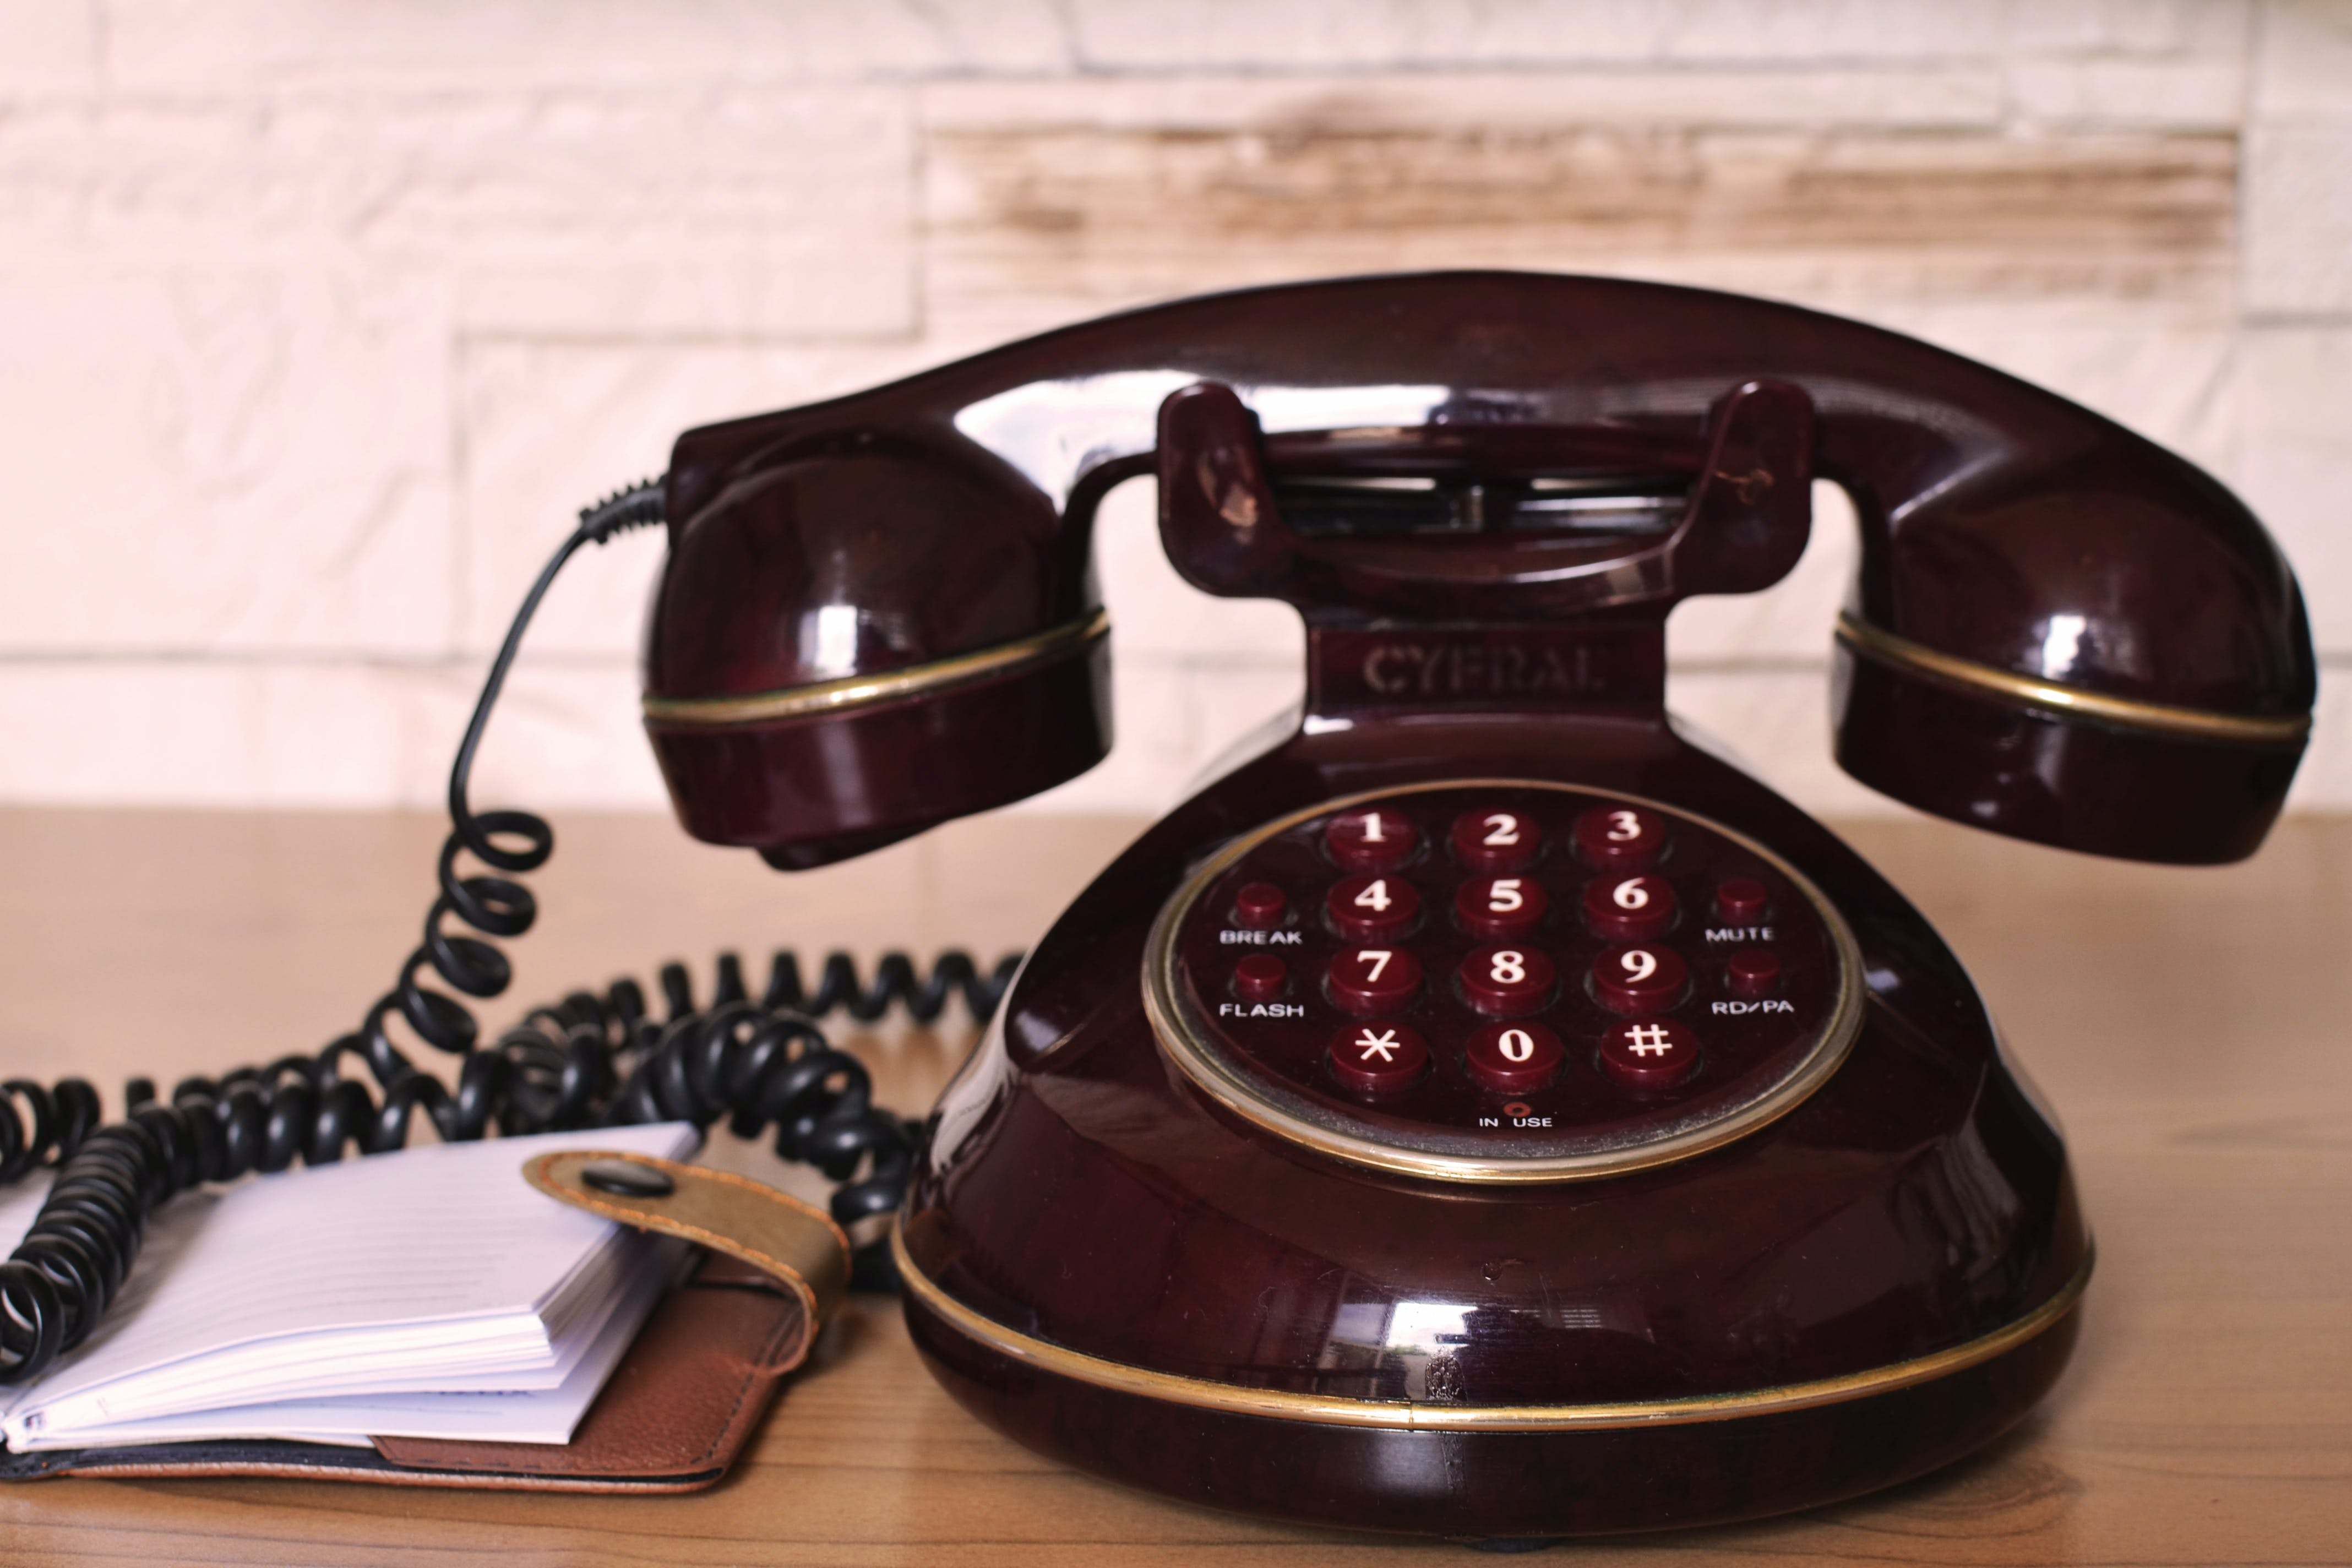 Maroon Push Button Telephone on Table